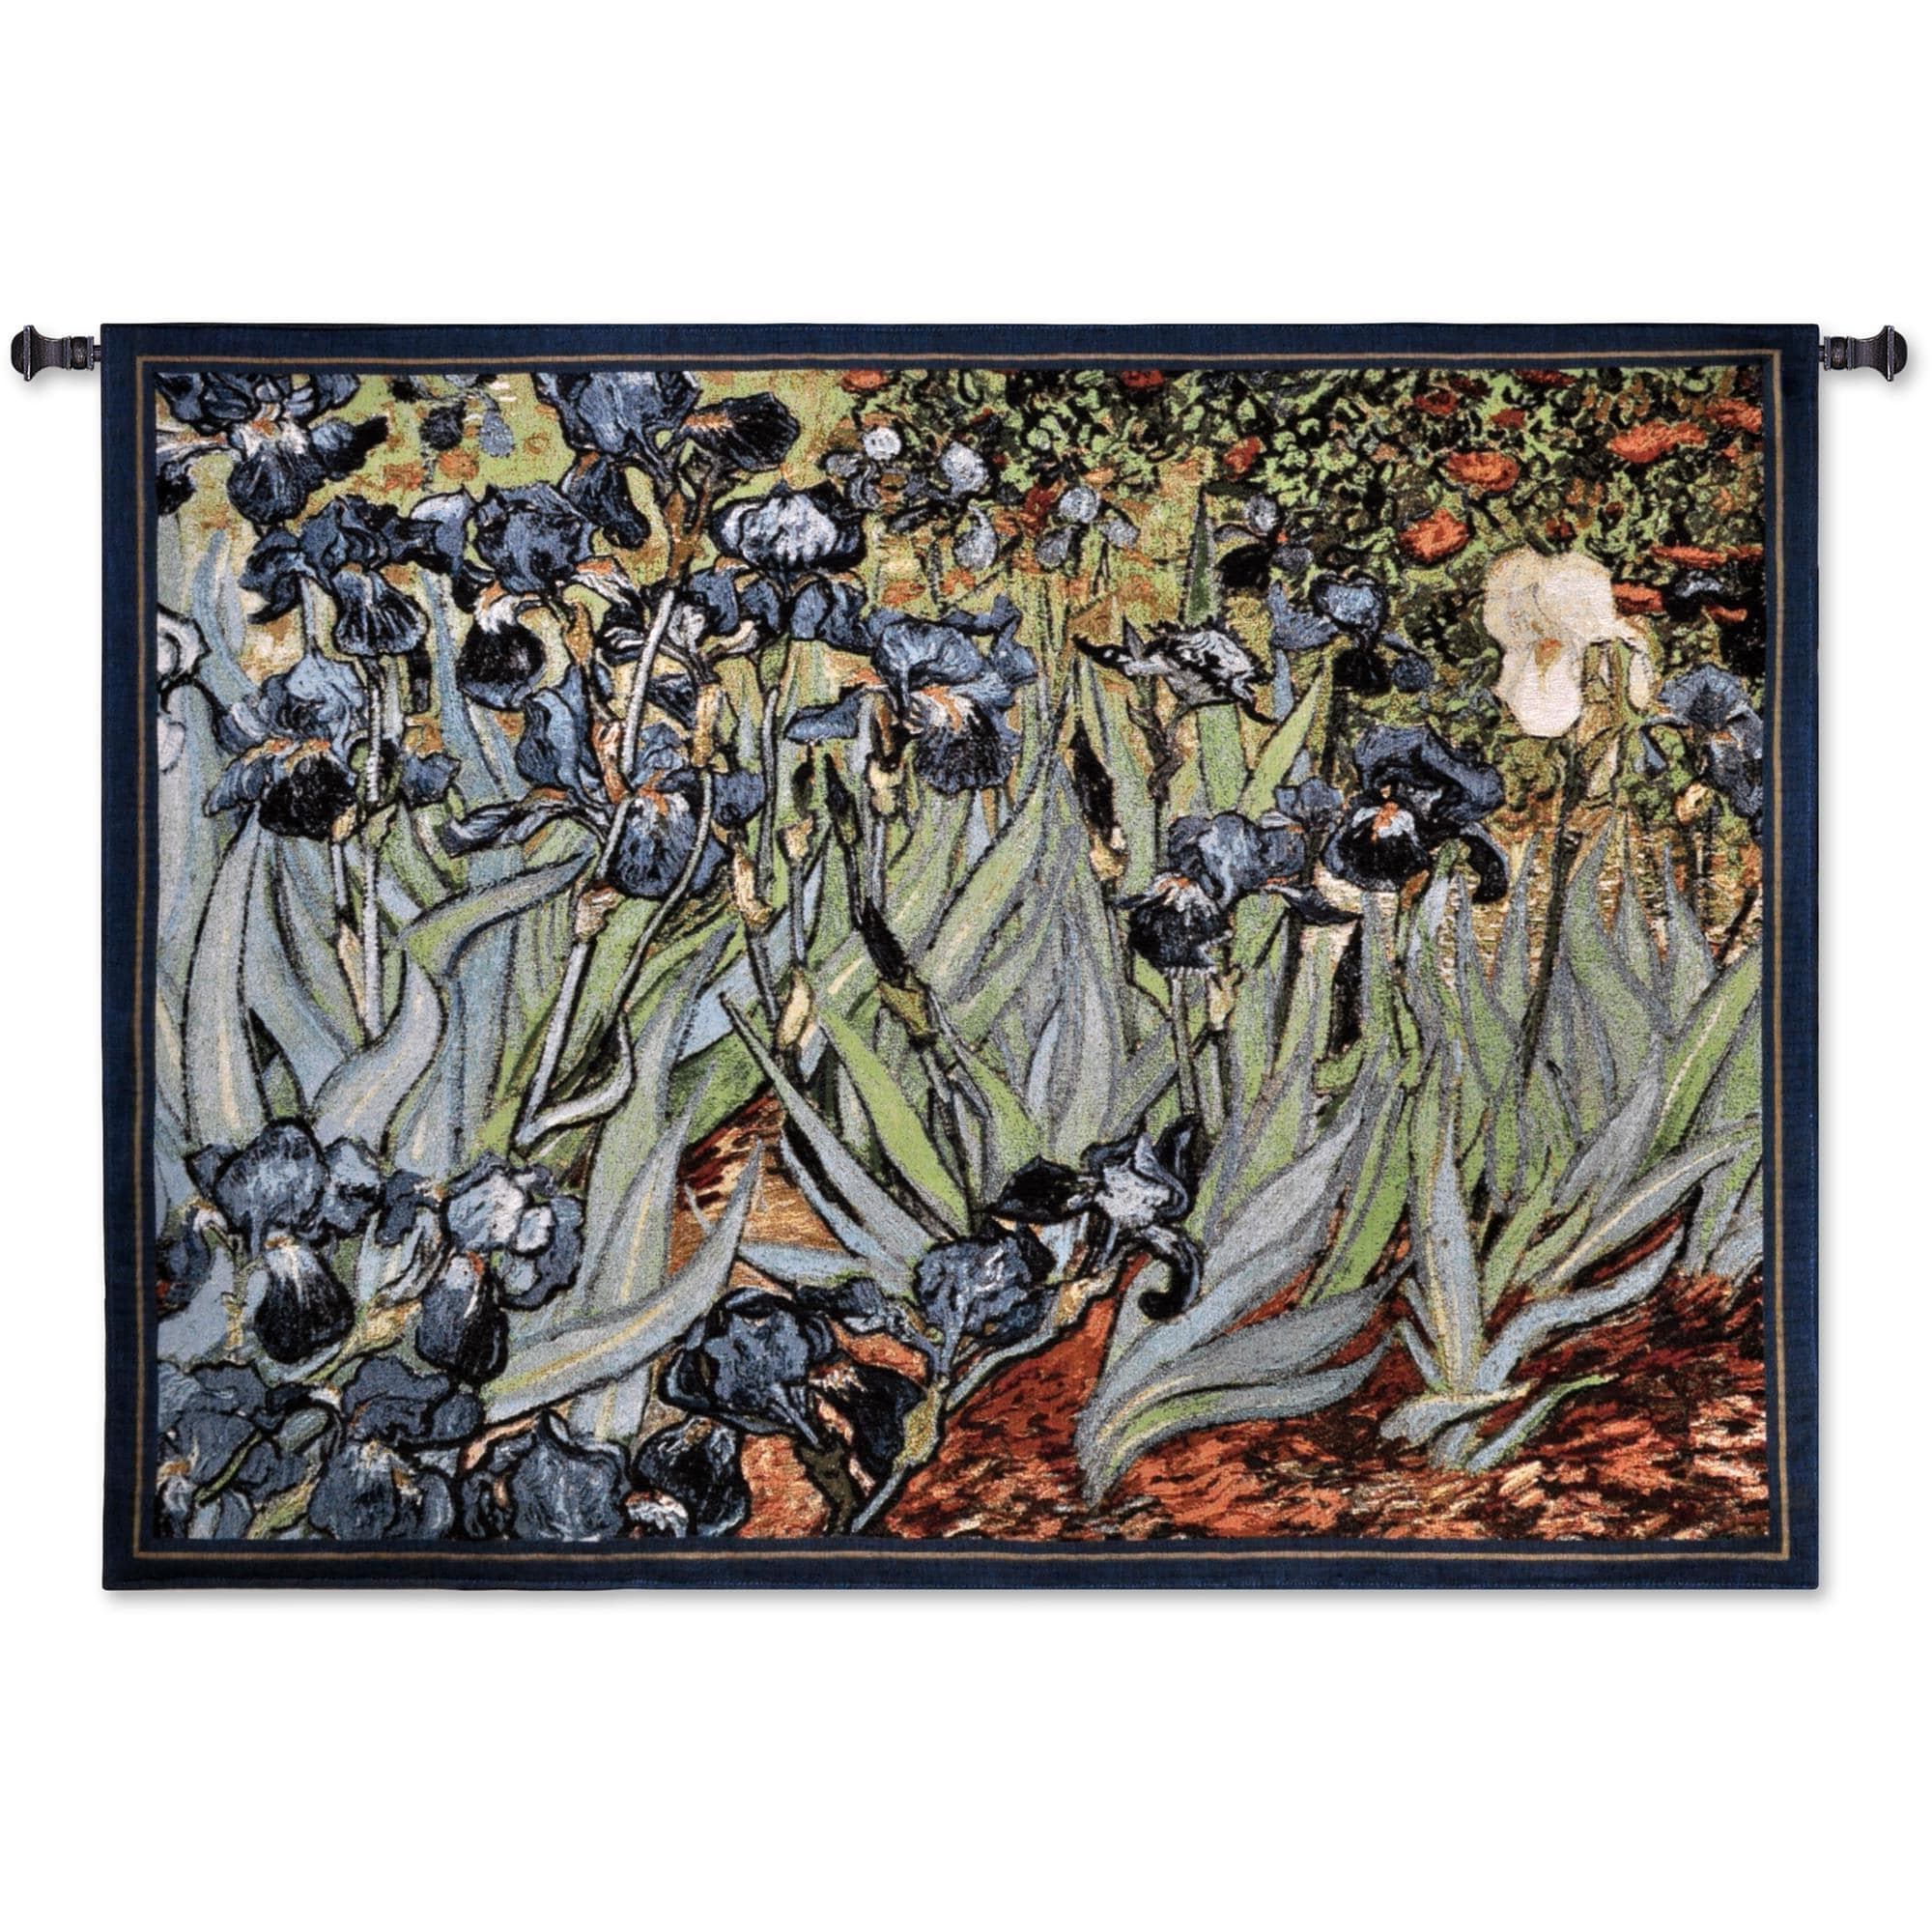 Blended Fabric Irises Tapestries Throughout Preferred Finearttapestries 1344 Wh Irises Van Gogh Wall Tapestry – Walmart (View 11 of 20)